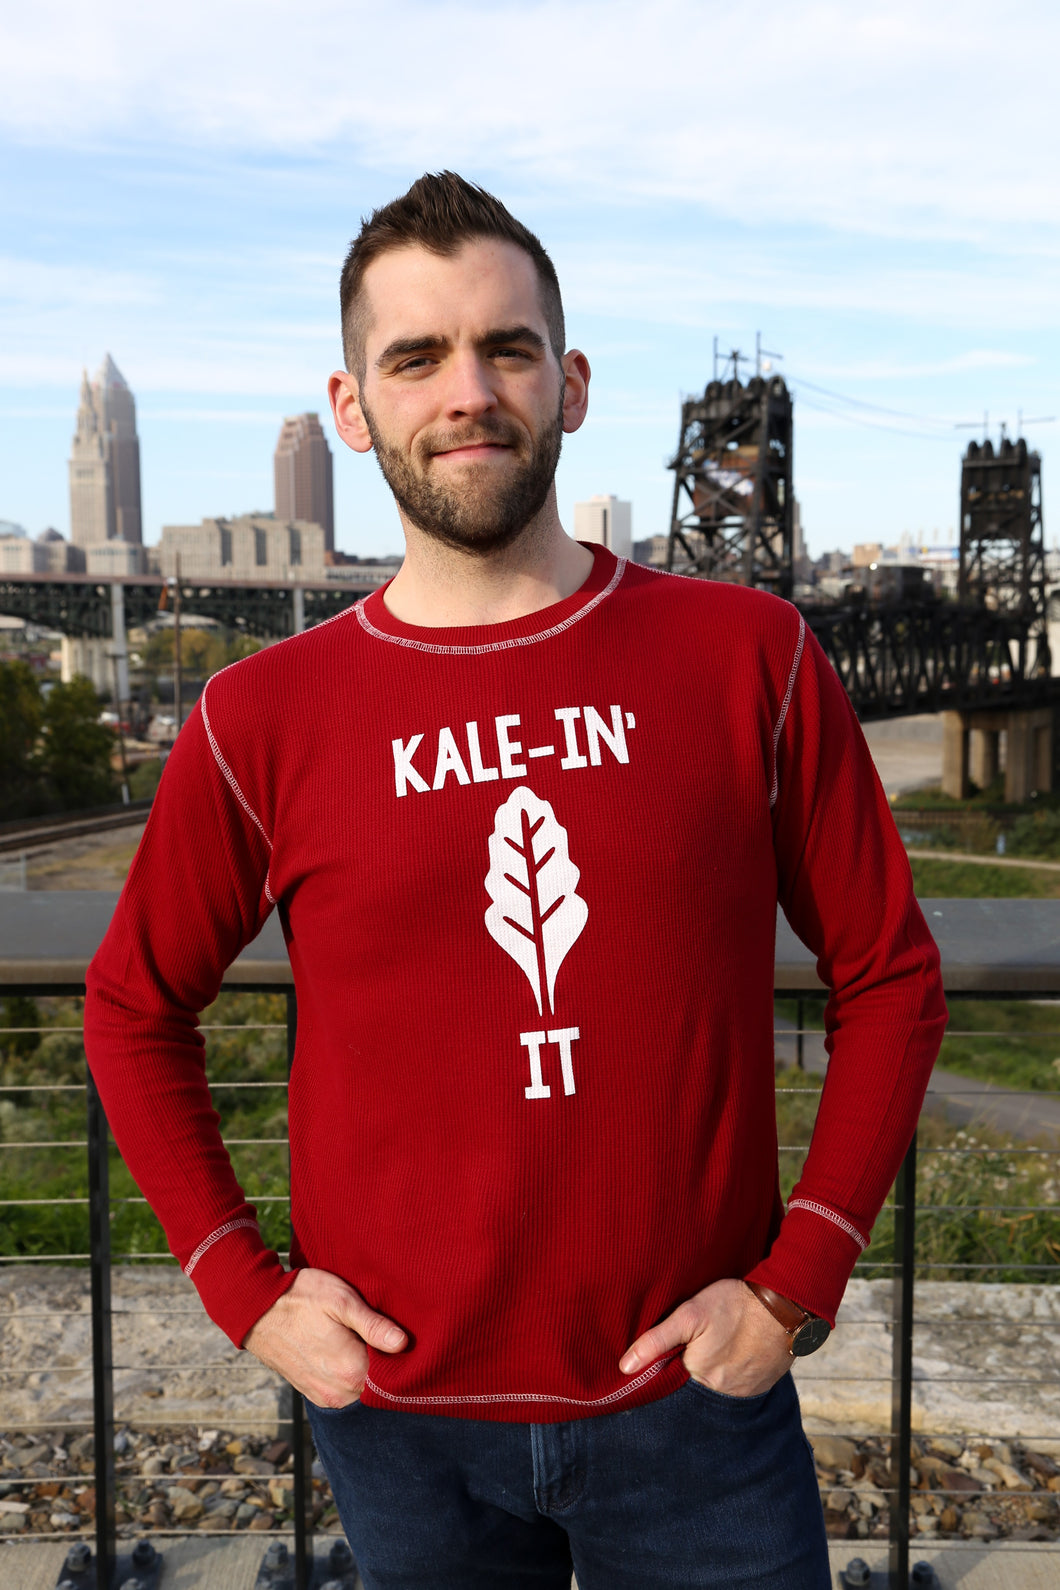 Kale-In It (Red Thermal)